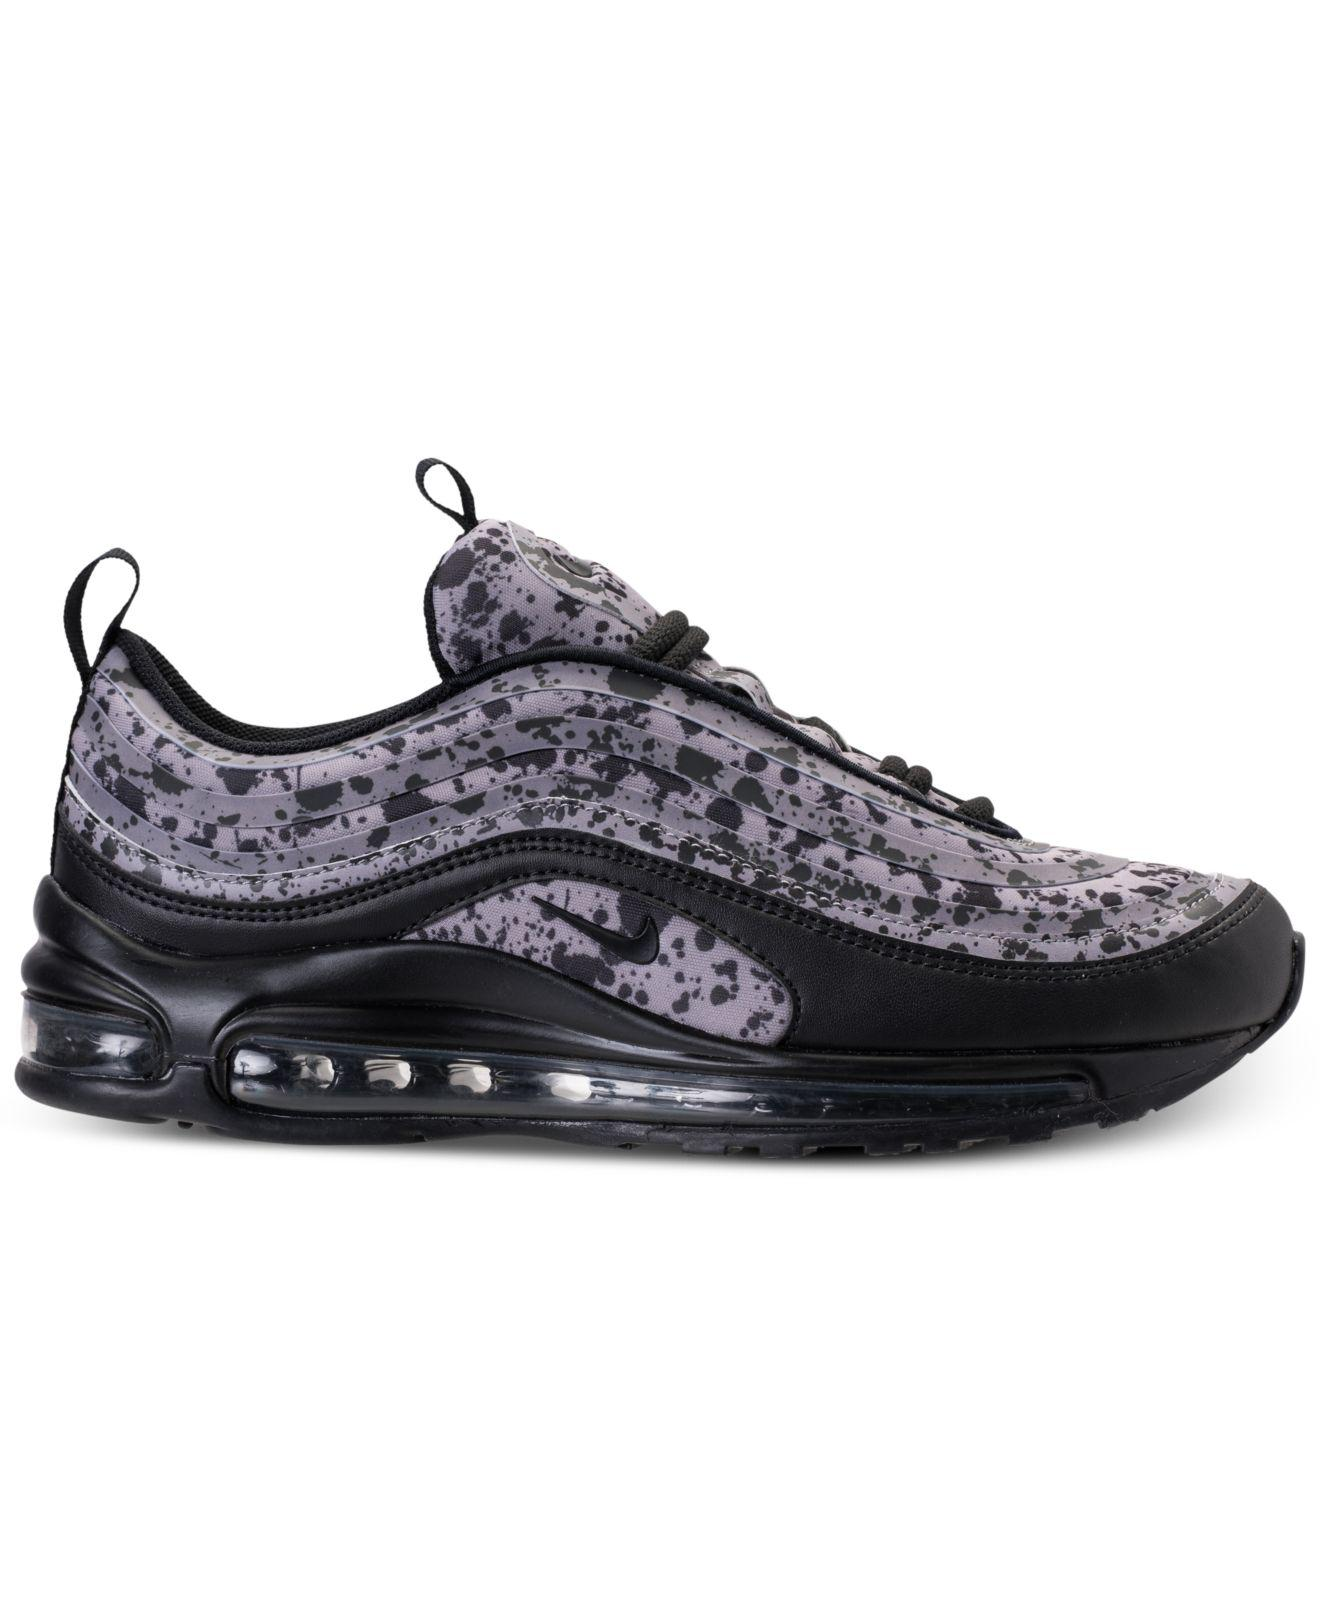 outlet store fe4ba d80cc Lyst - Nike Air Max 97 Ultra 2017 Premium Casual Sneakers From ...